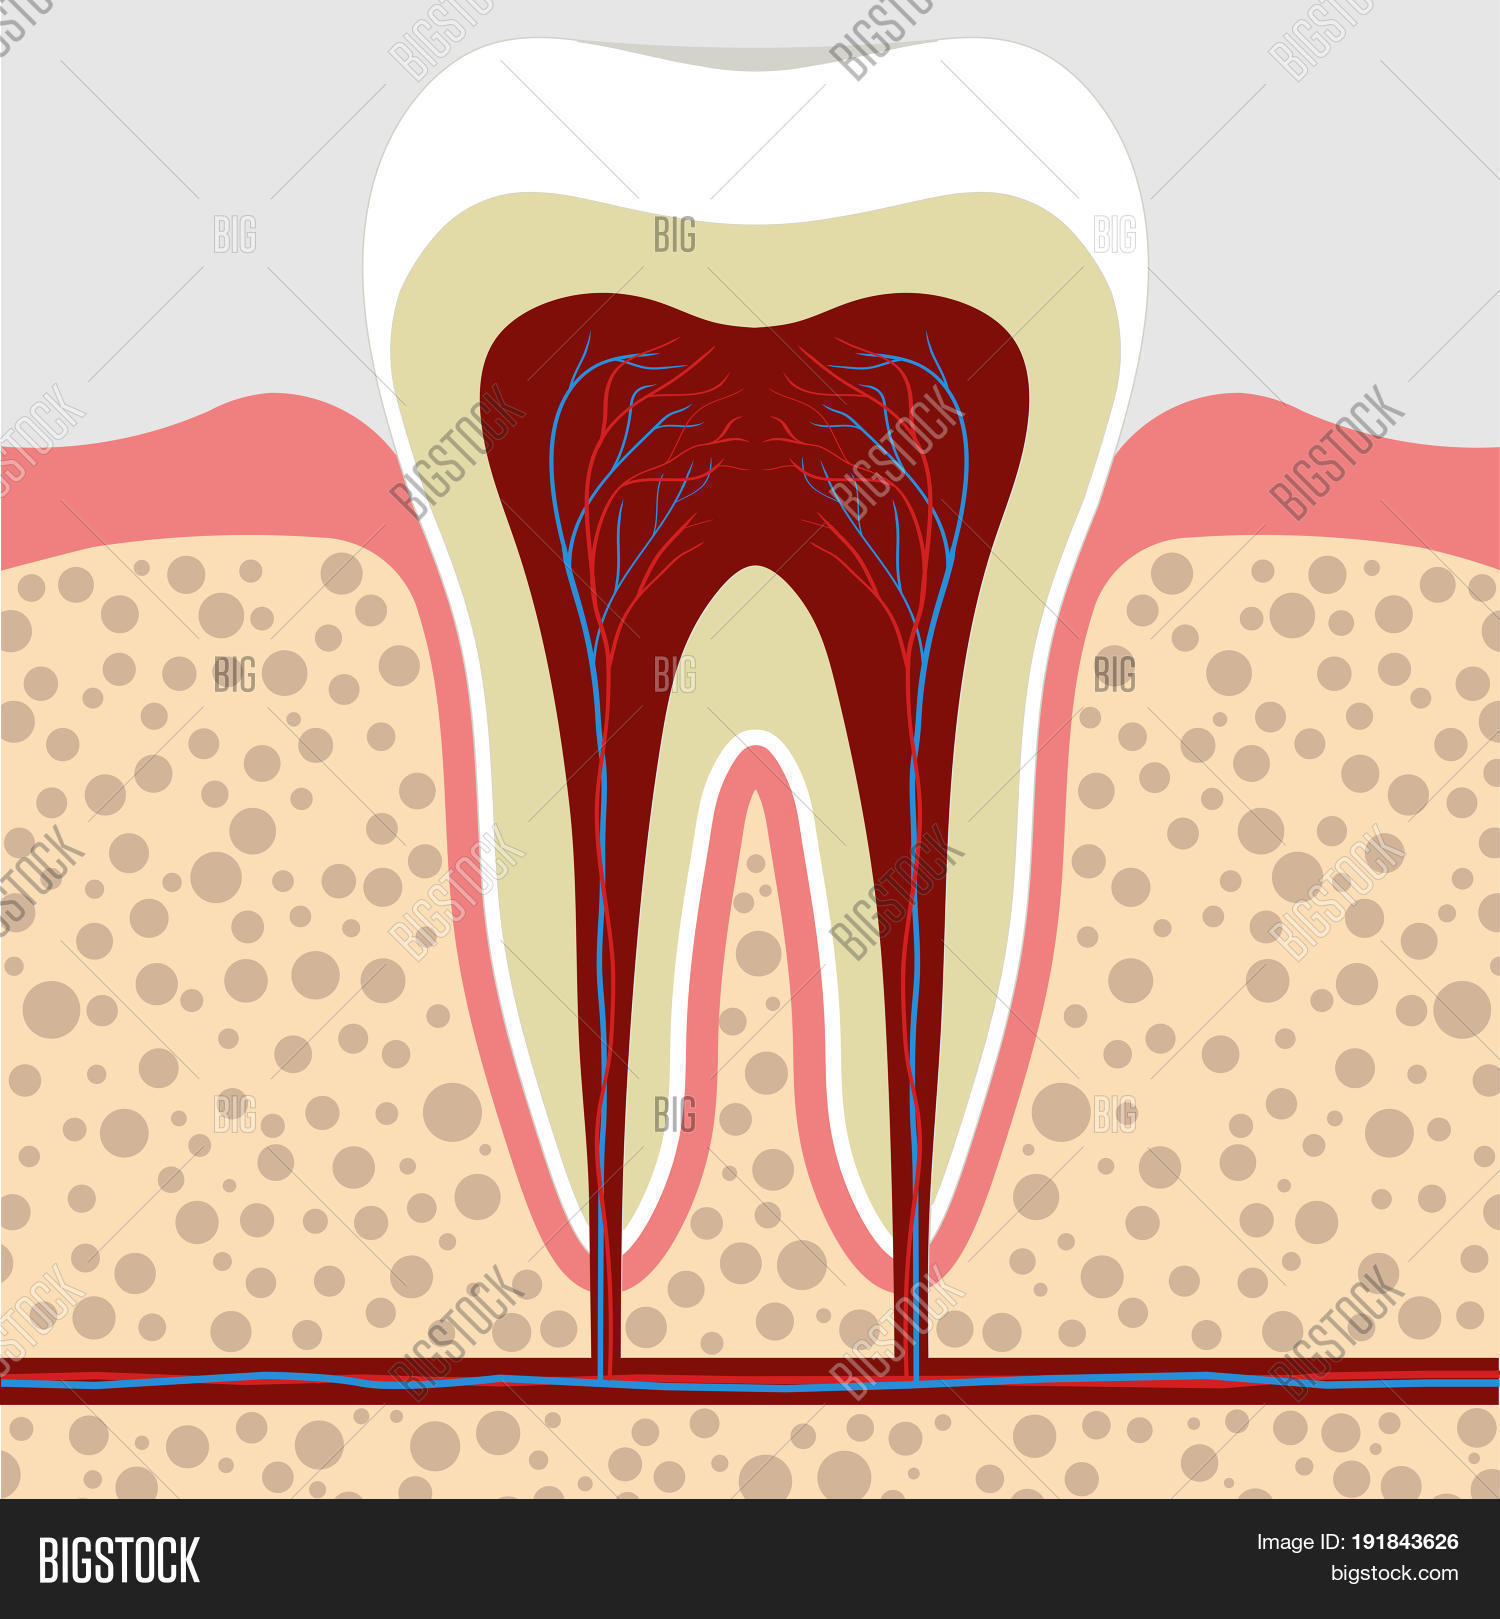 Human Tooth Gum Cross Image & Photo (Free Trial) | Bigstock